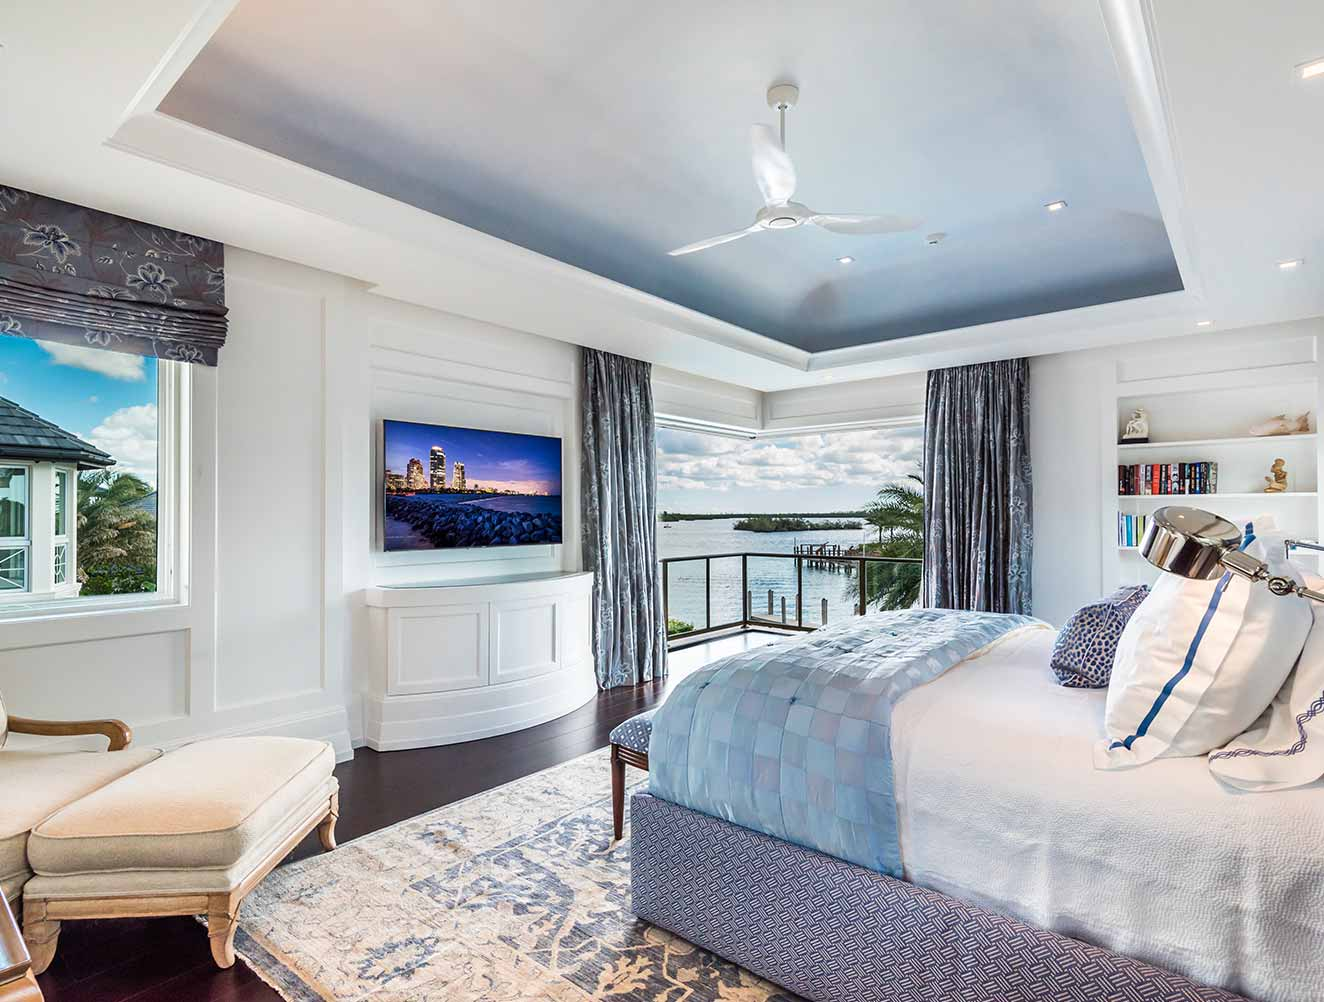 Master bedroom with elevated waterfront views in a Naples Florida, single family home. Designed by Kukk Architecture & Design Naples.